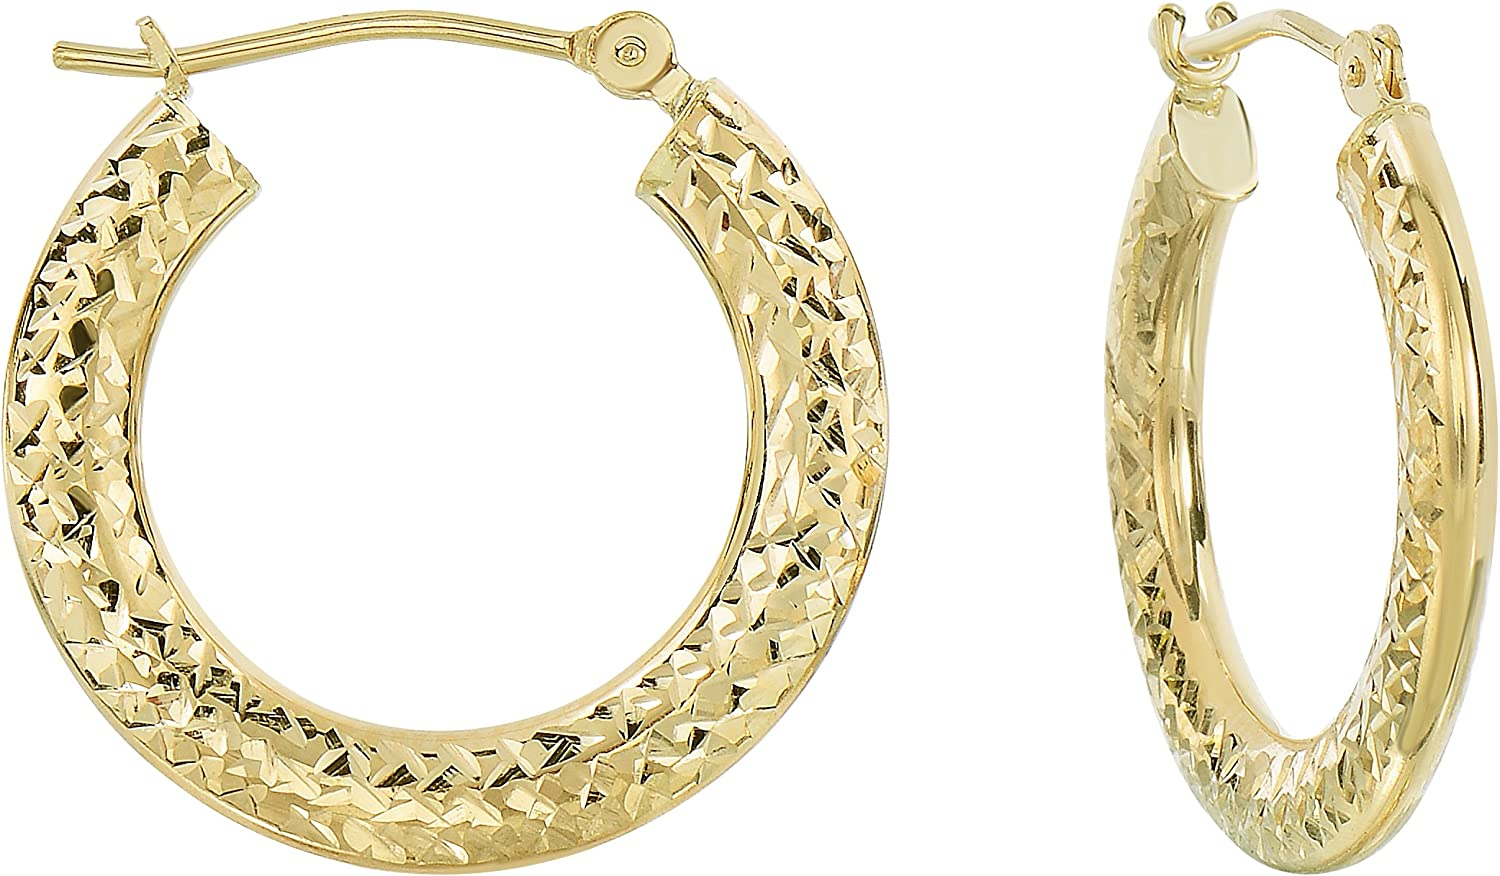 14kt Yellow Gold Textured 31mm-18mm Oval Hoop Earring with White Gold Latch Closure Modern Design Free Shipping Valentine/'s gift